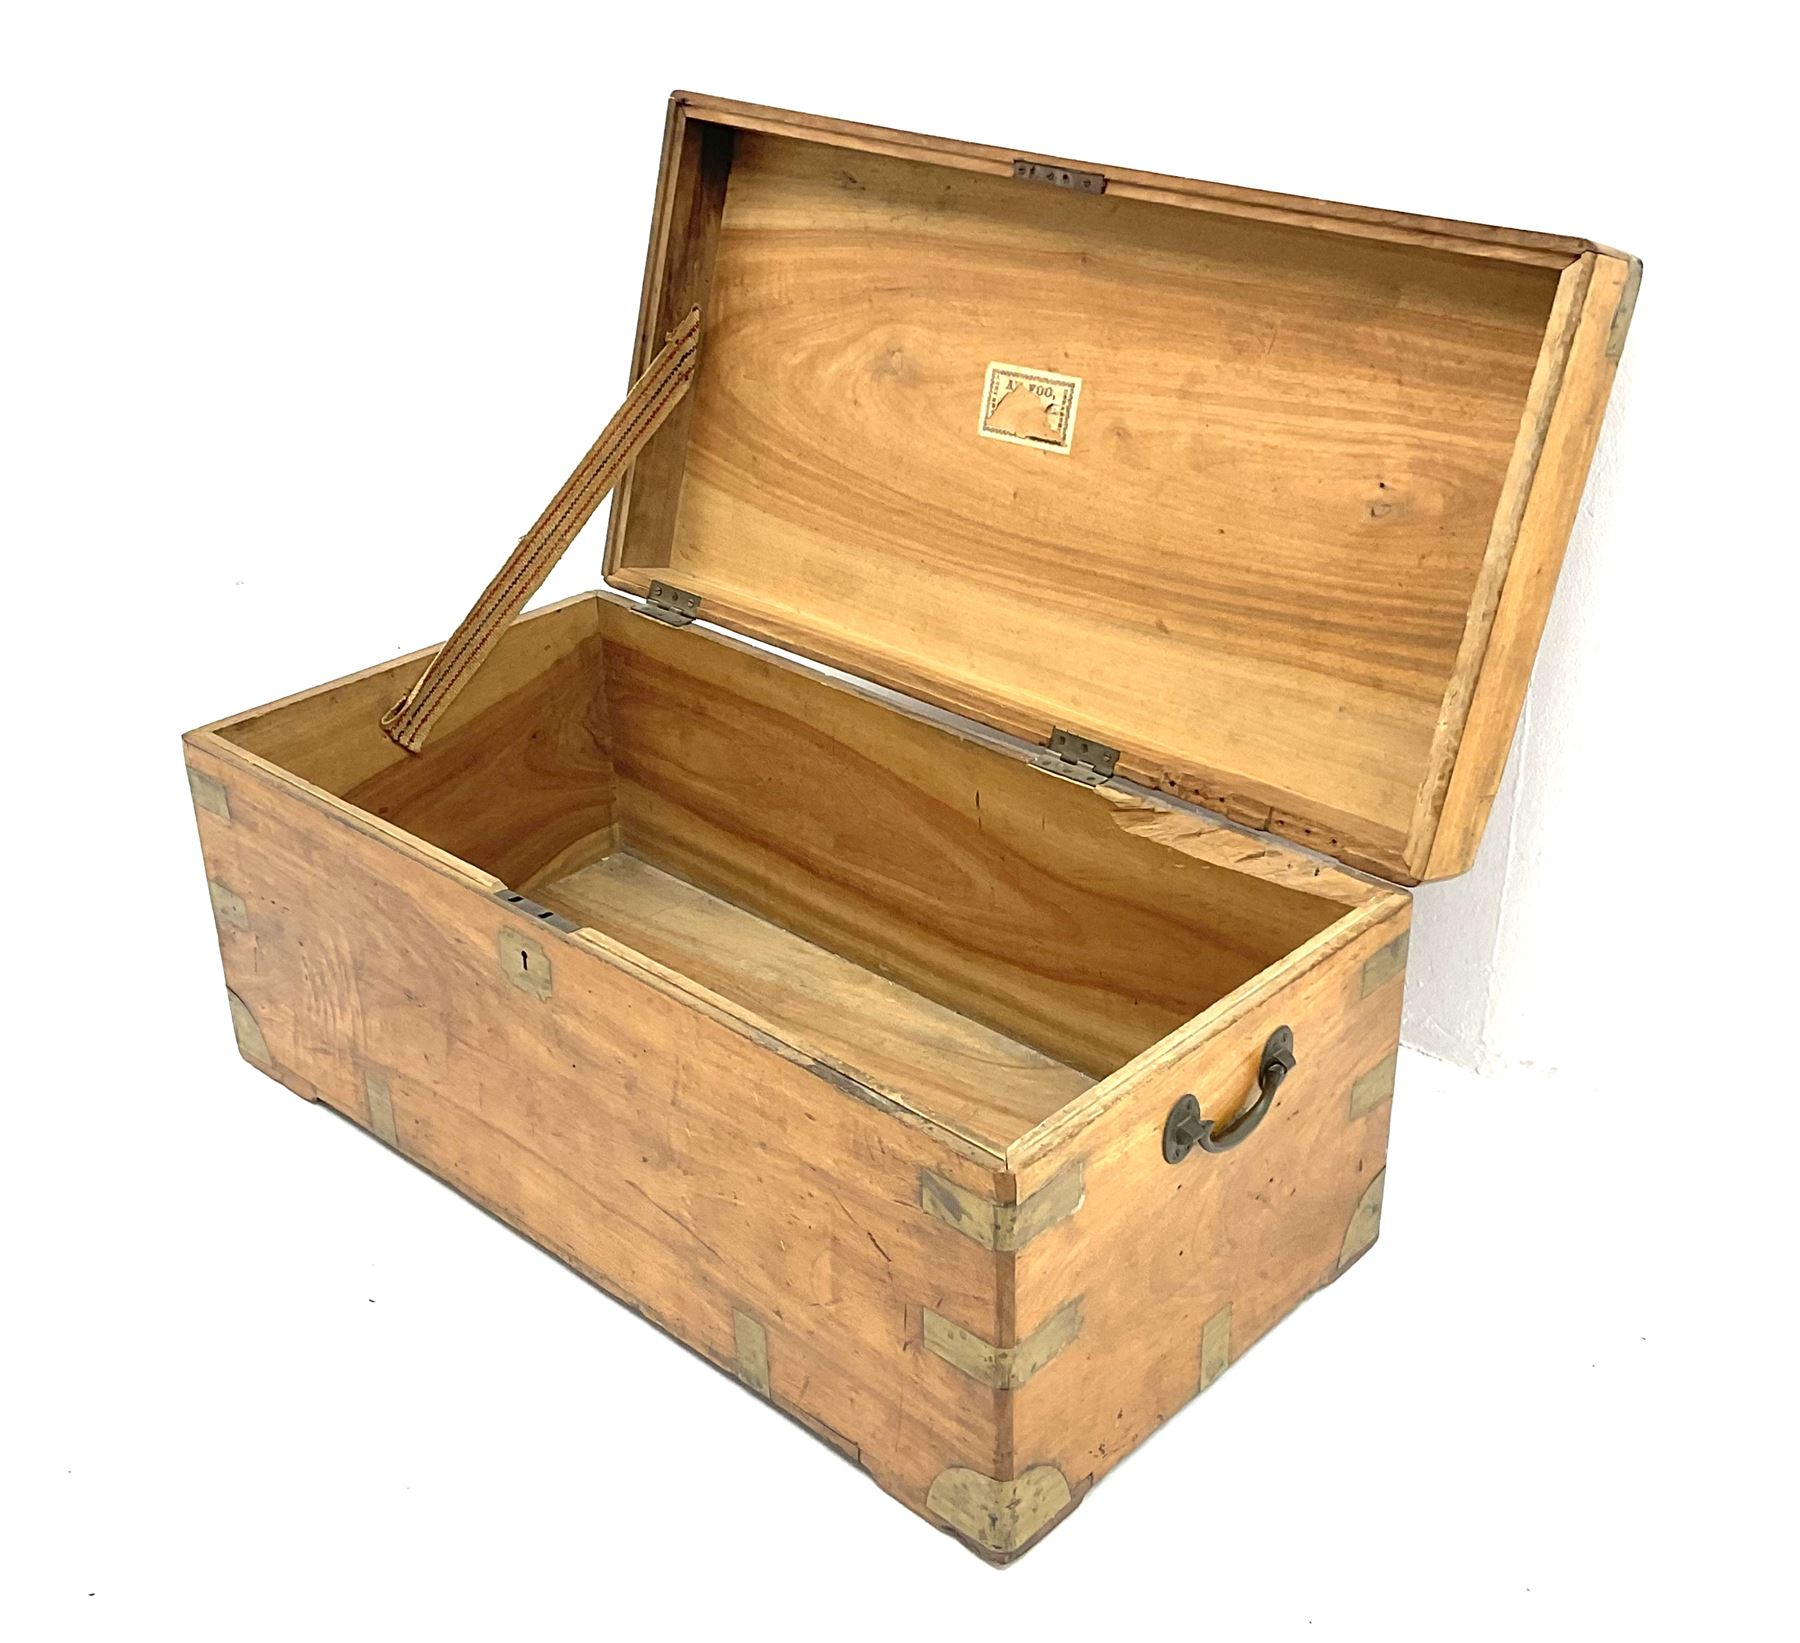 Early 20th century brass bound camphor wood campaign style chest - Image 2 of 3